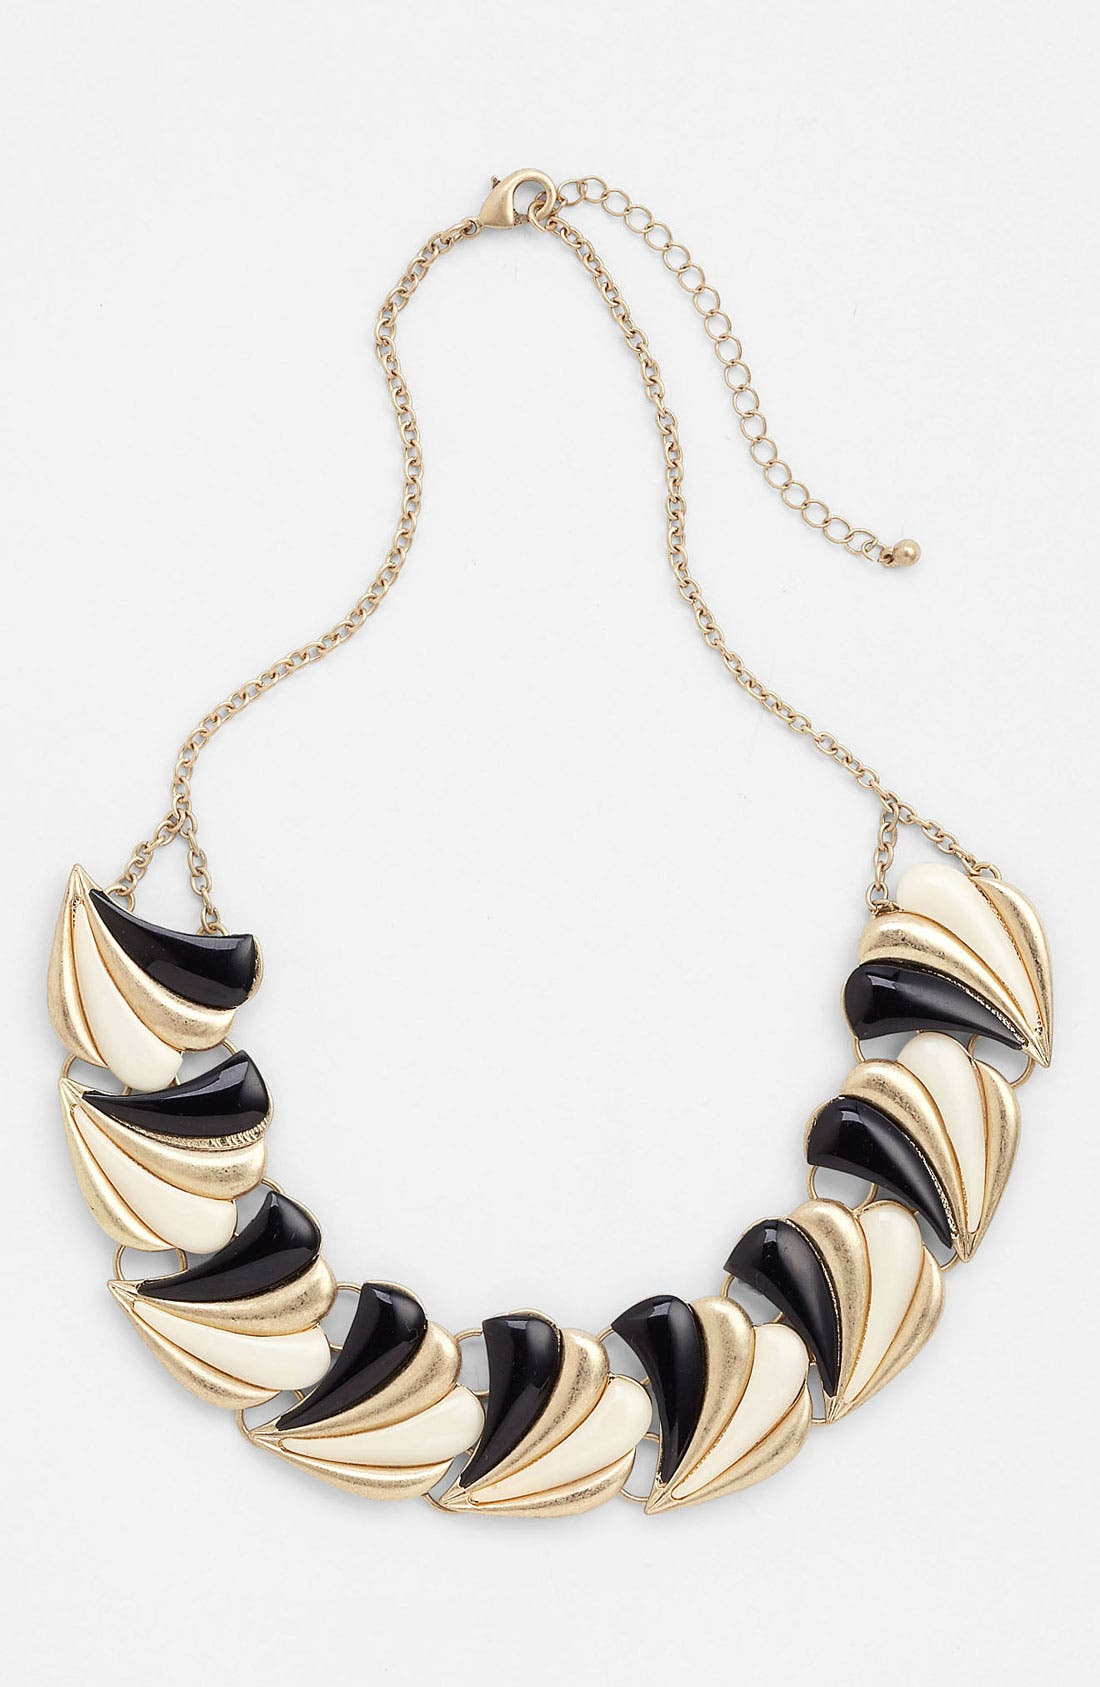 Alternate Image 1 Selected - Panacea Black & White Collar Necklace